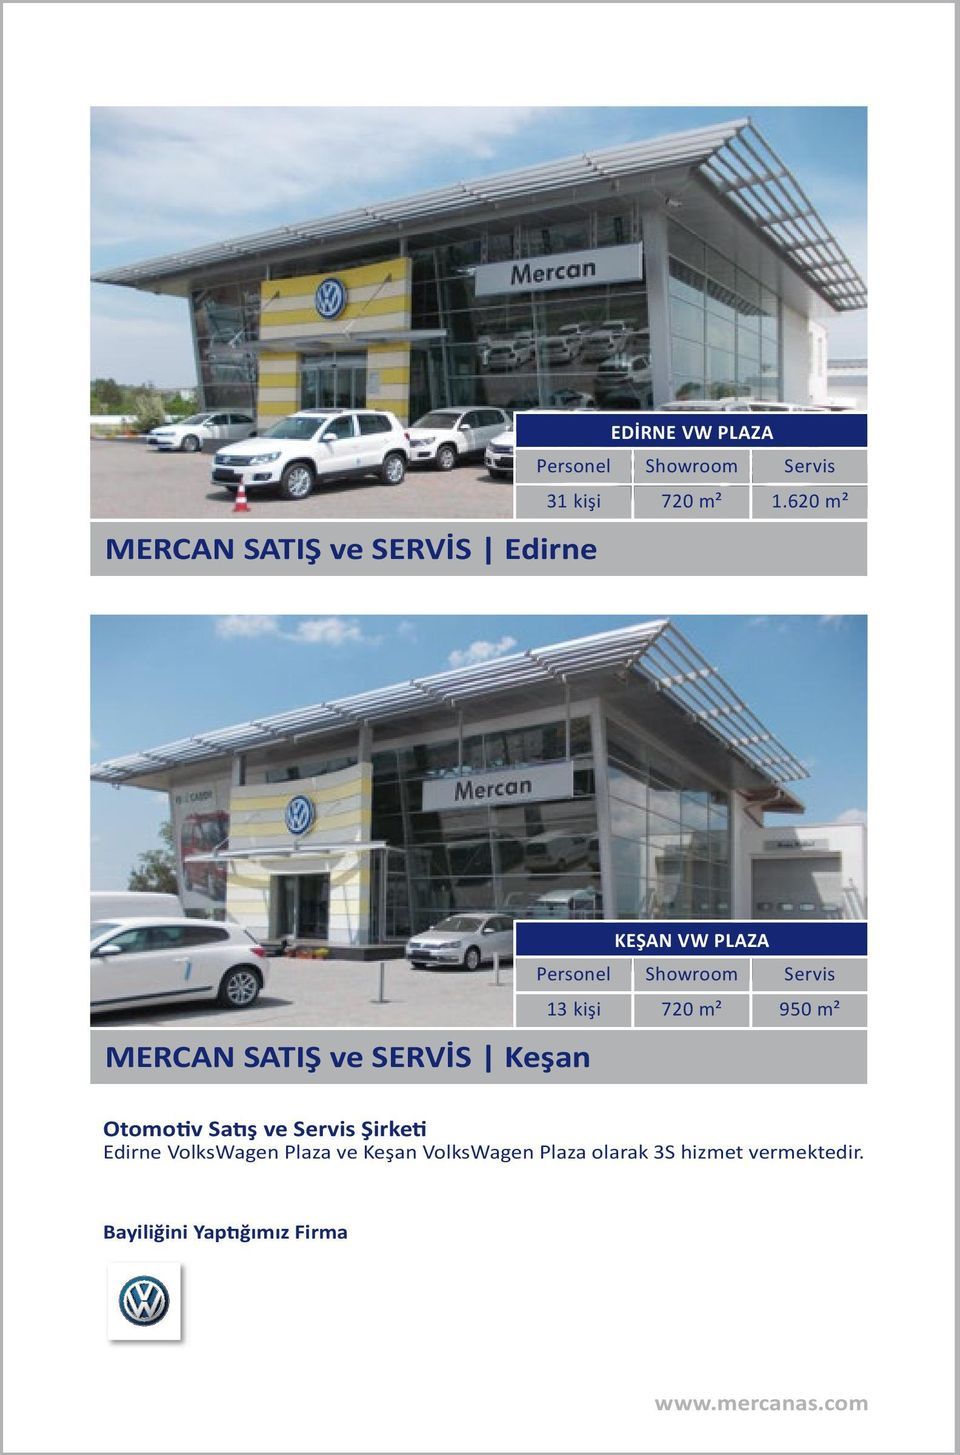 620 m² MERCAN SATIŞ ve SERVİS Keşan KEŞAN VW PLAZA Personel Showroom Servis 13